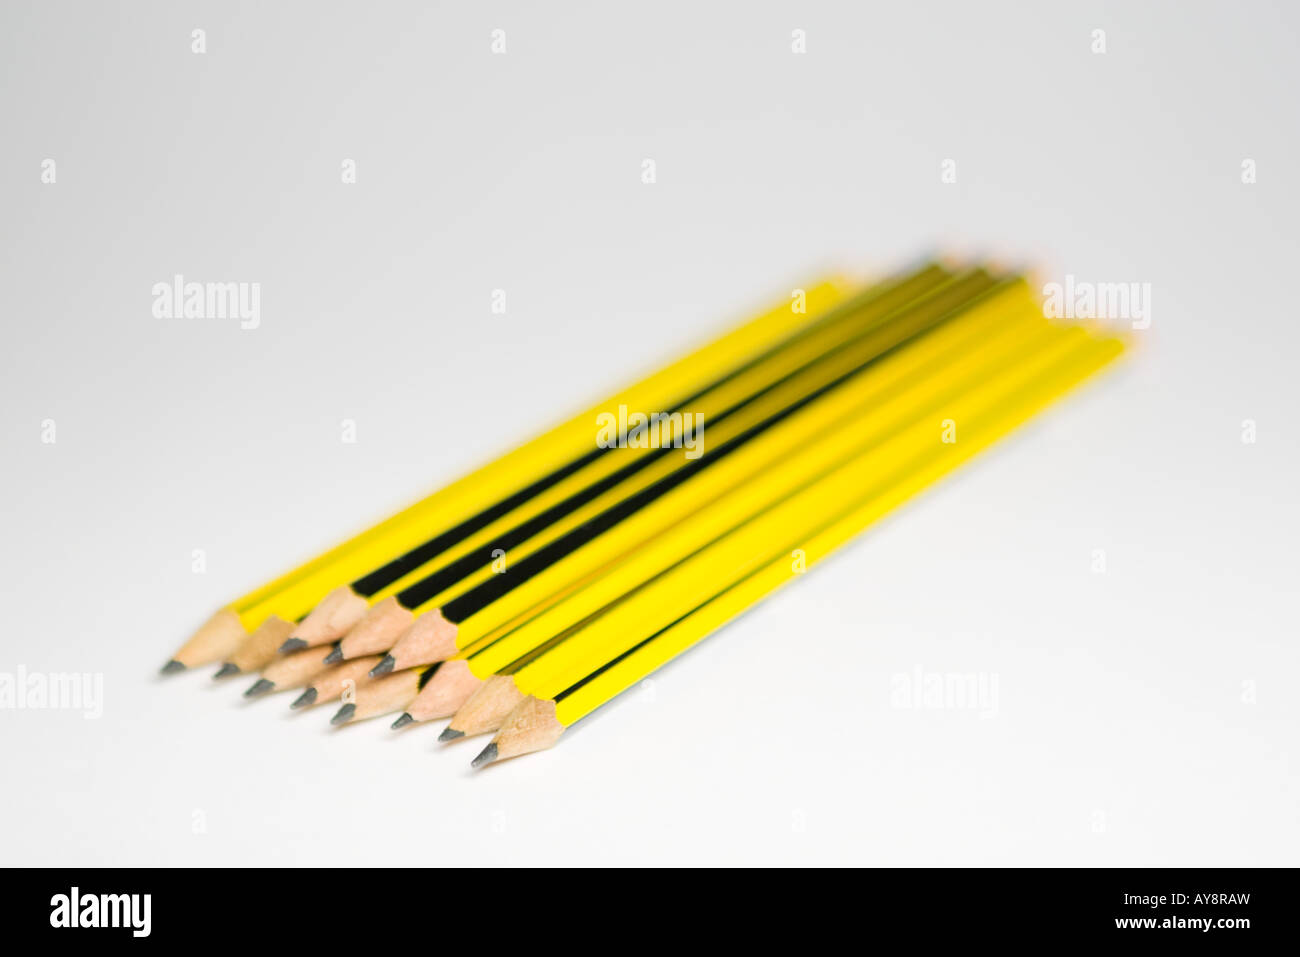 Stacked pencils, close-up - Stock Image